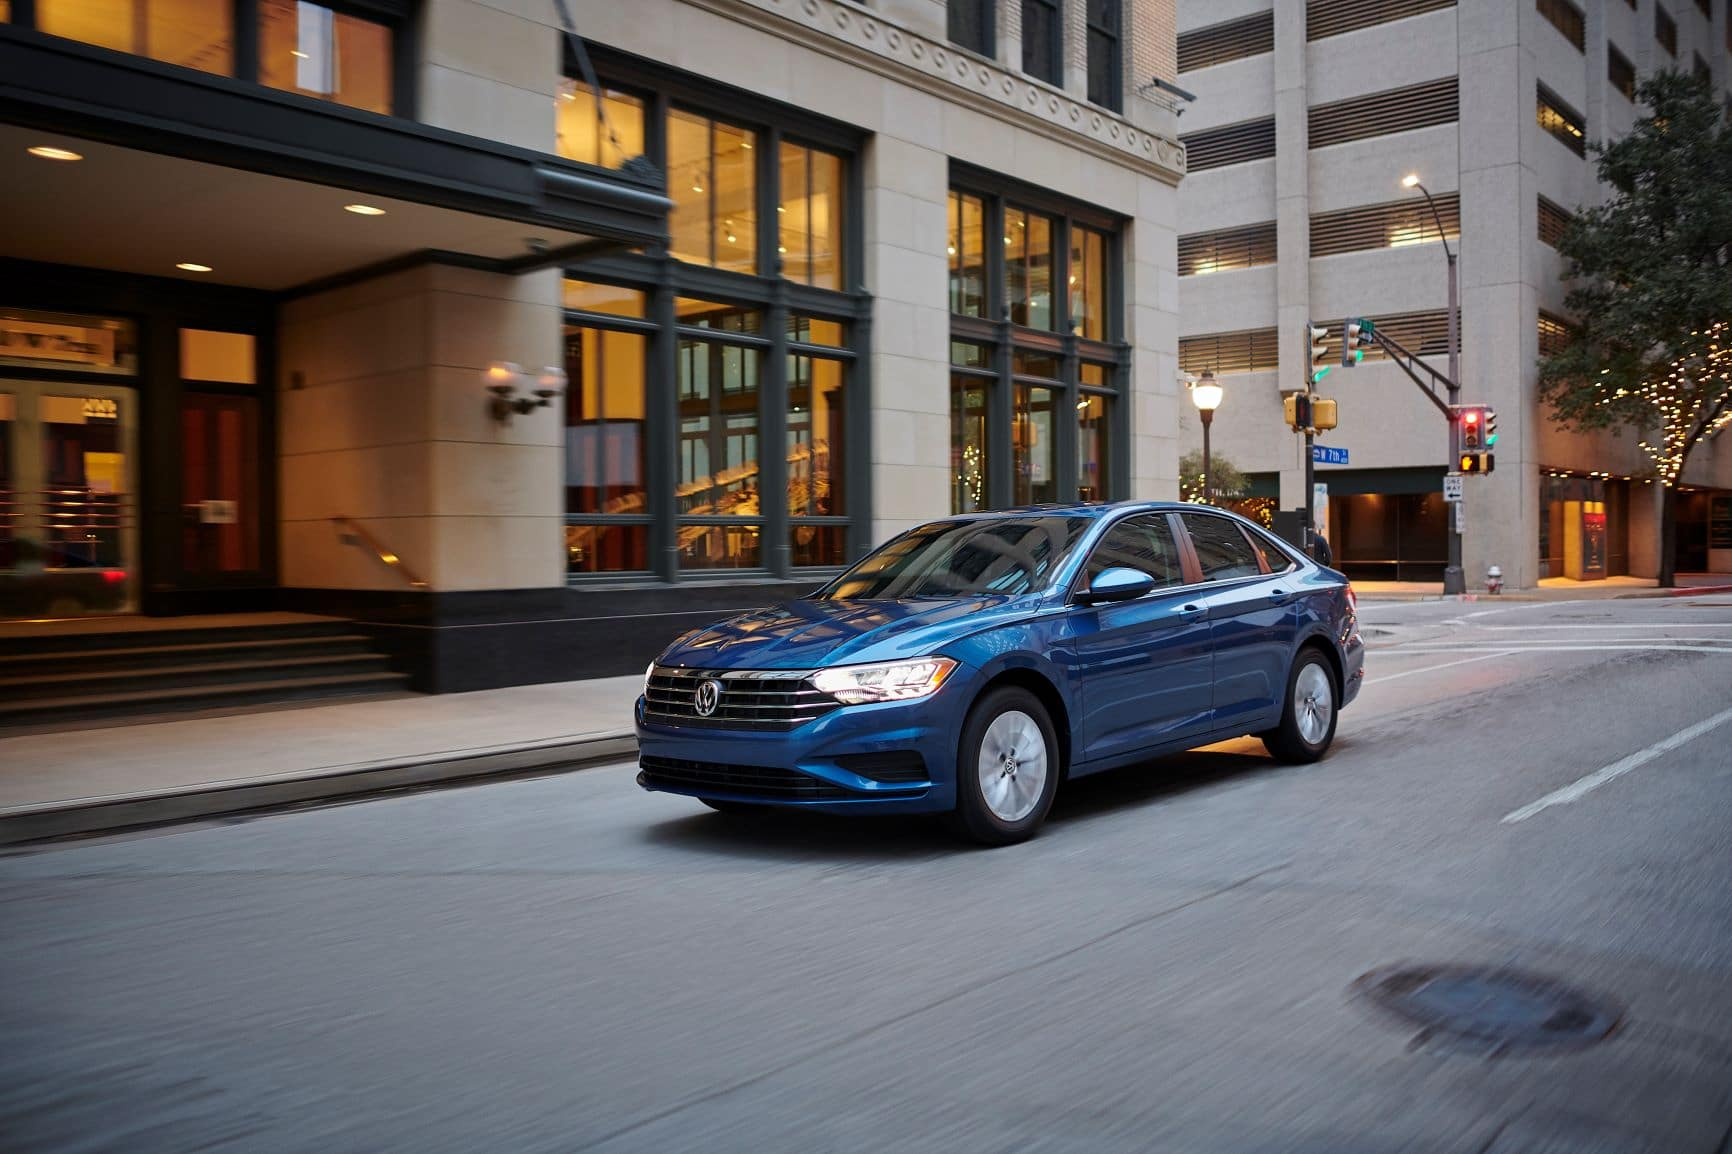 2019 Jetta in the city